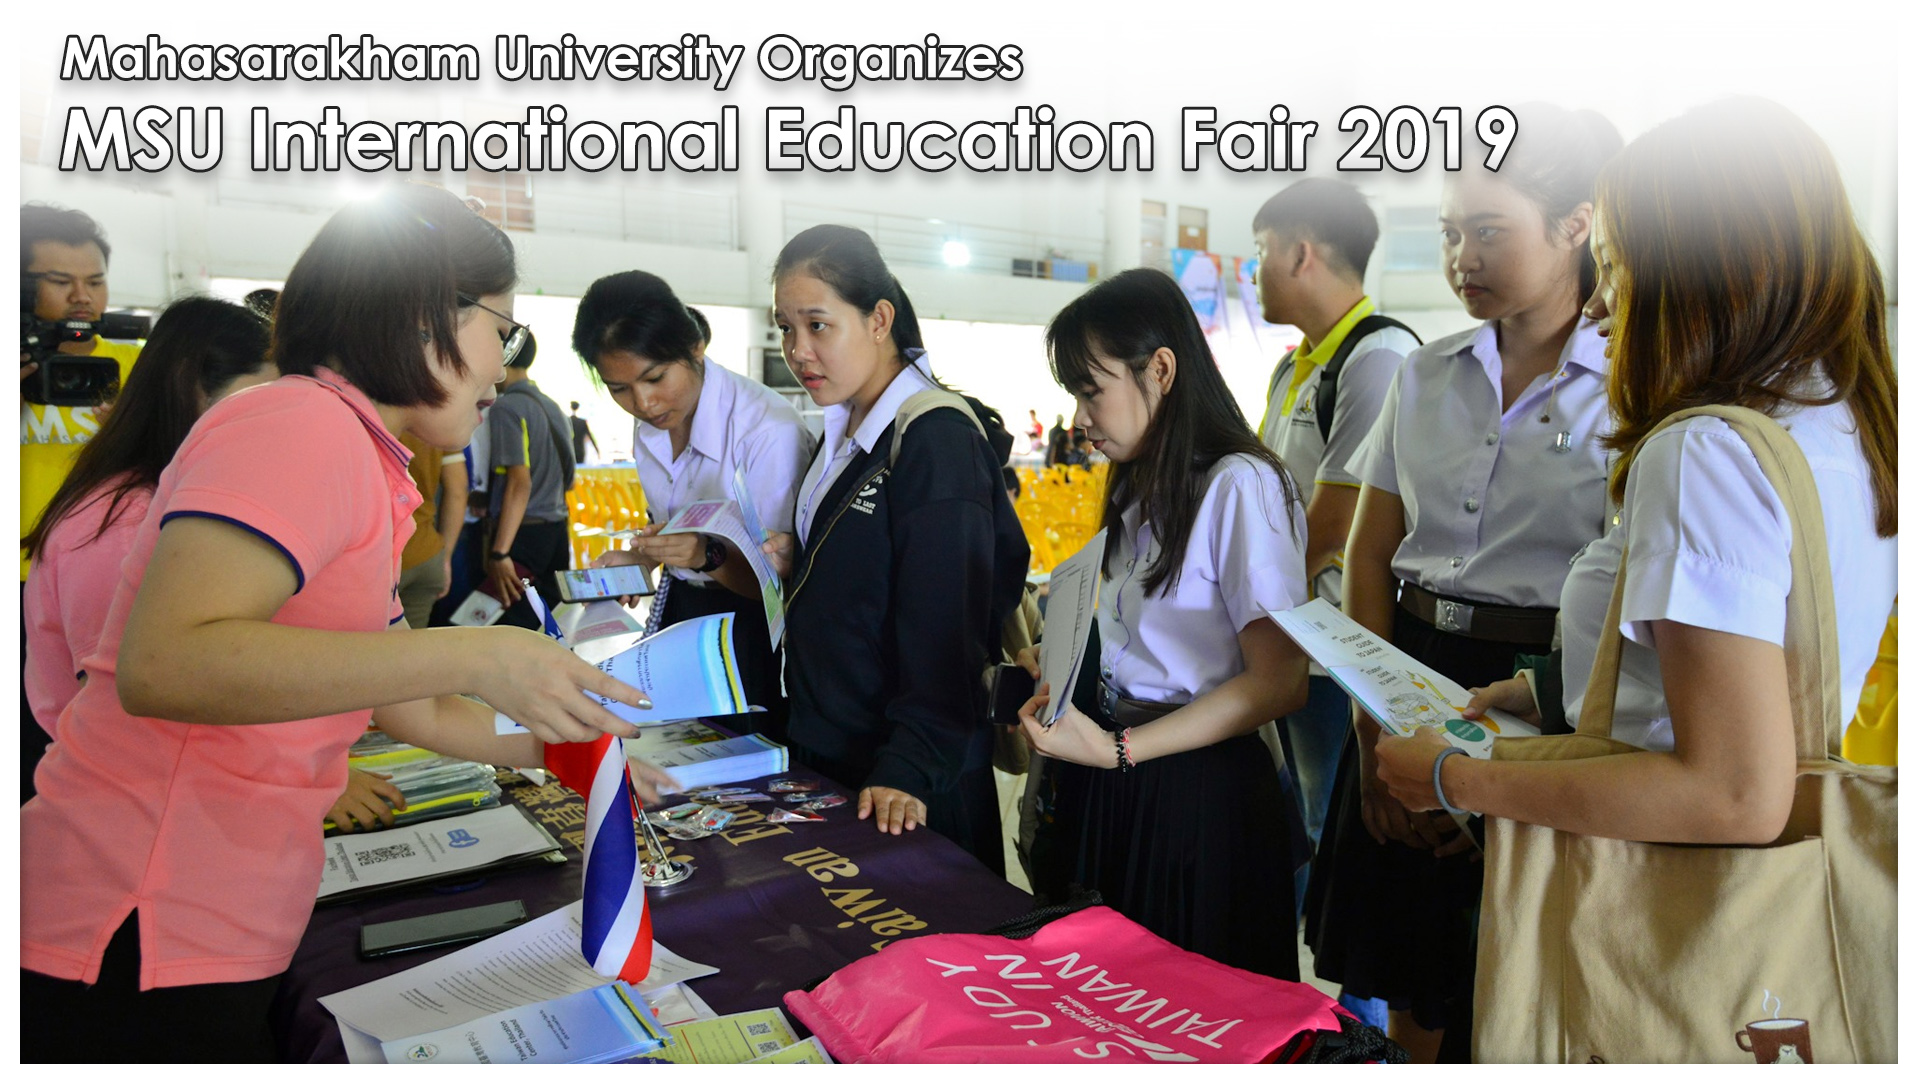 Mahasarakham University Organizes MSU International Education Fair 2019